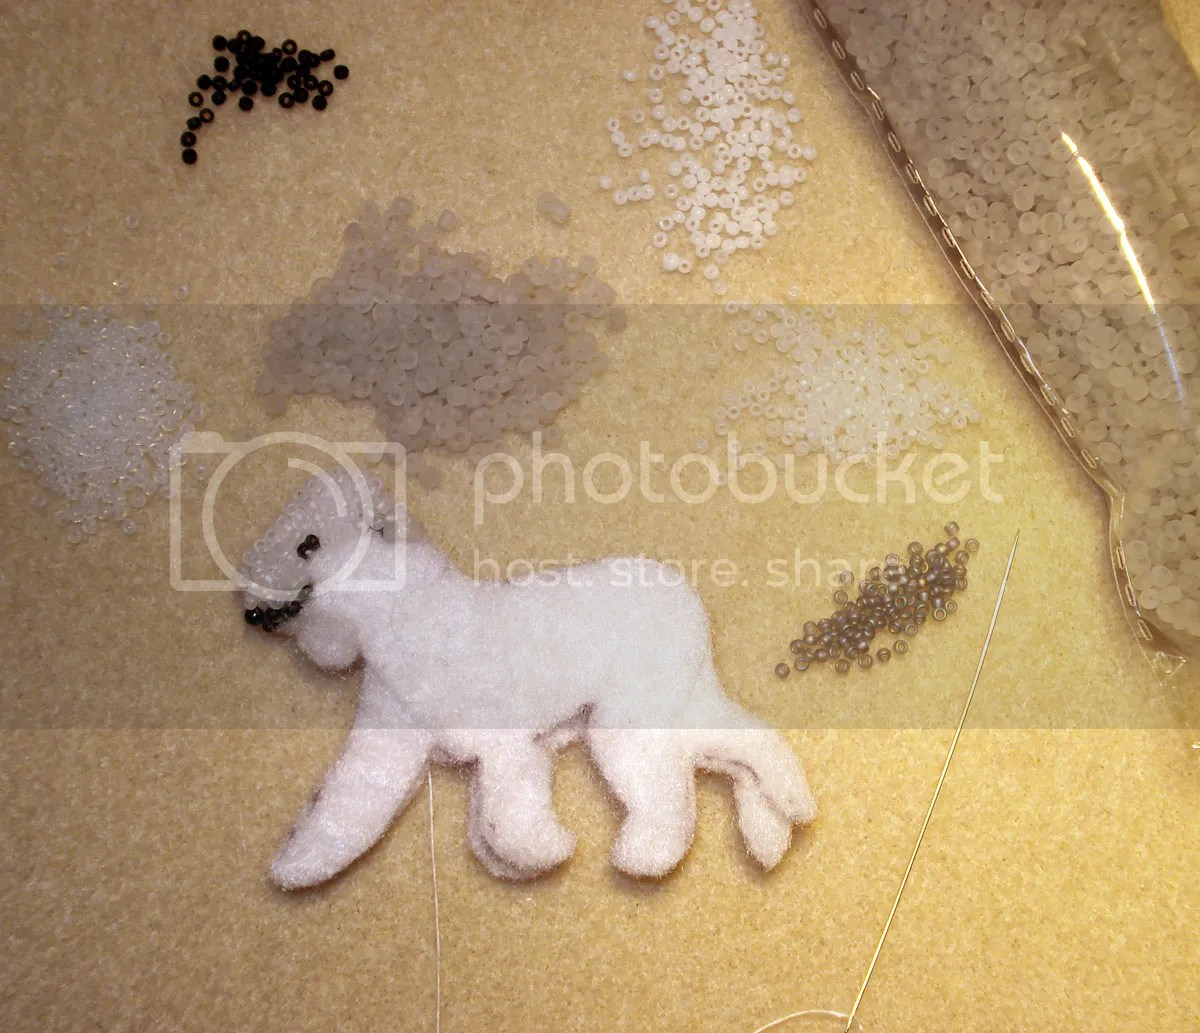 beaded Bedlington Terrier bead embroidery artist Boston etsy pin pendant beading blog